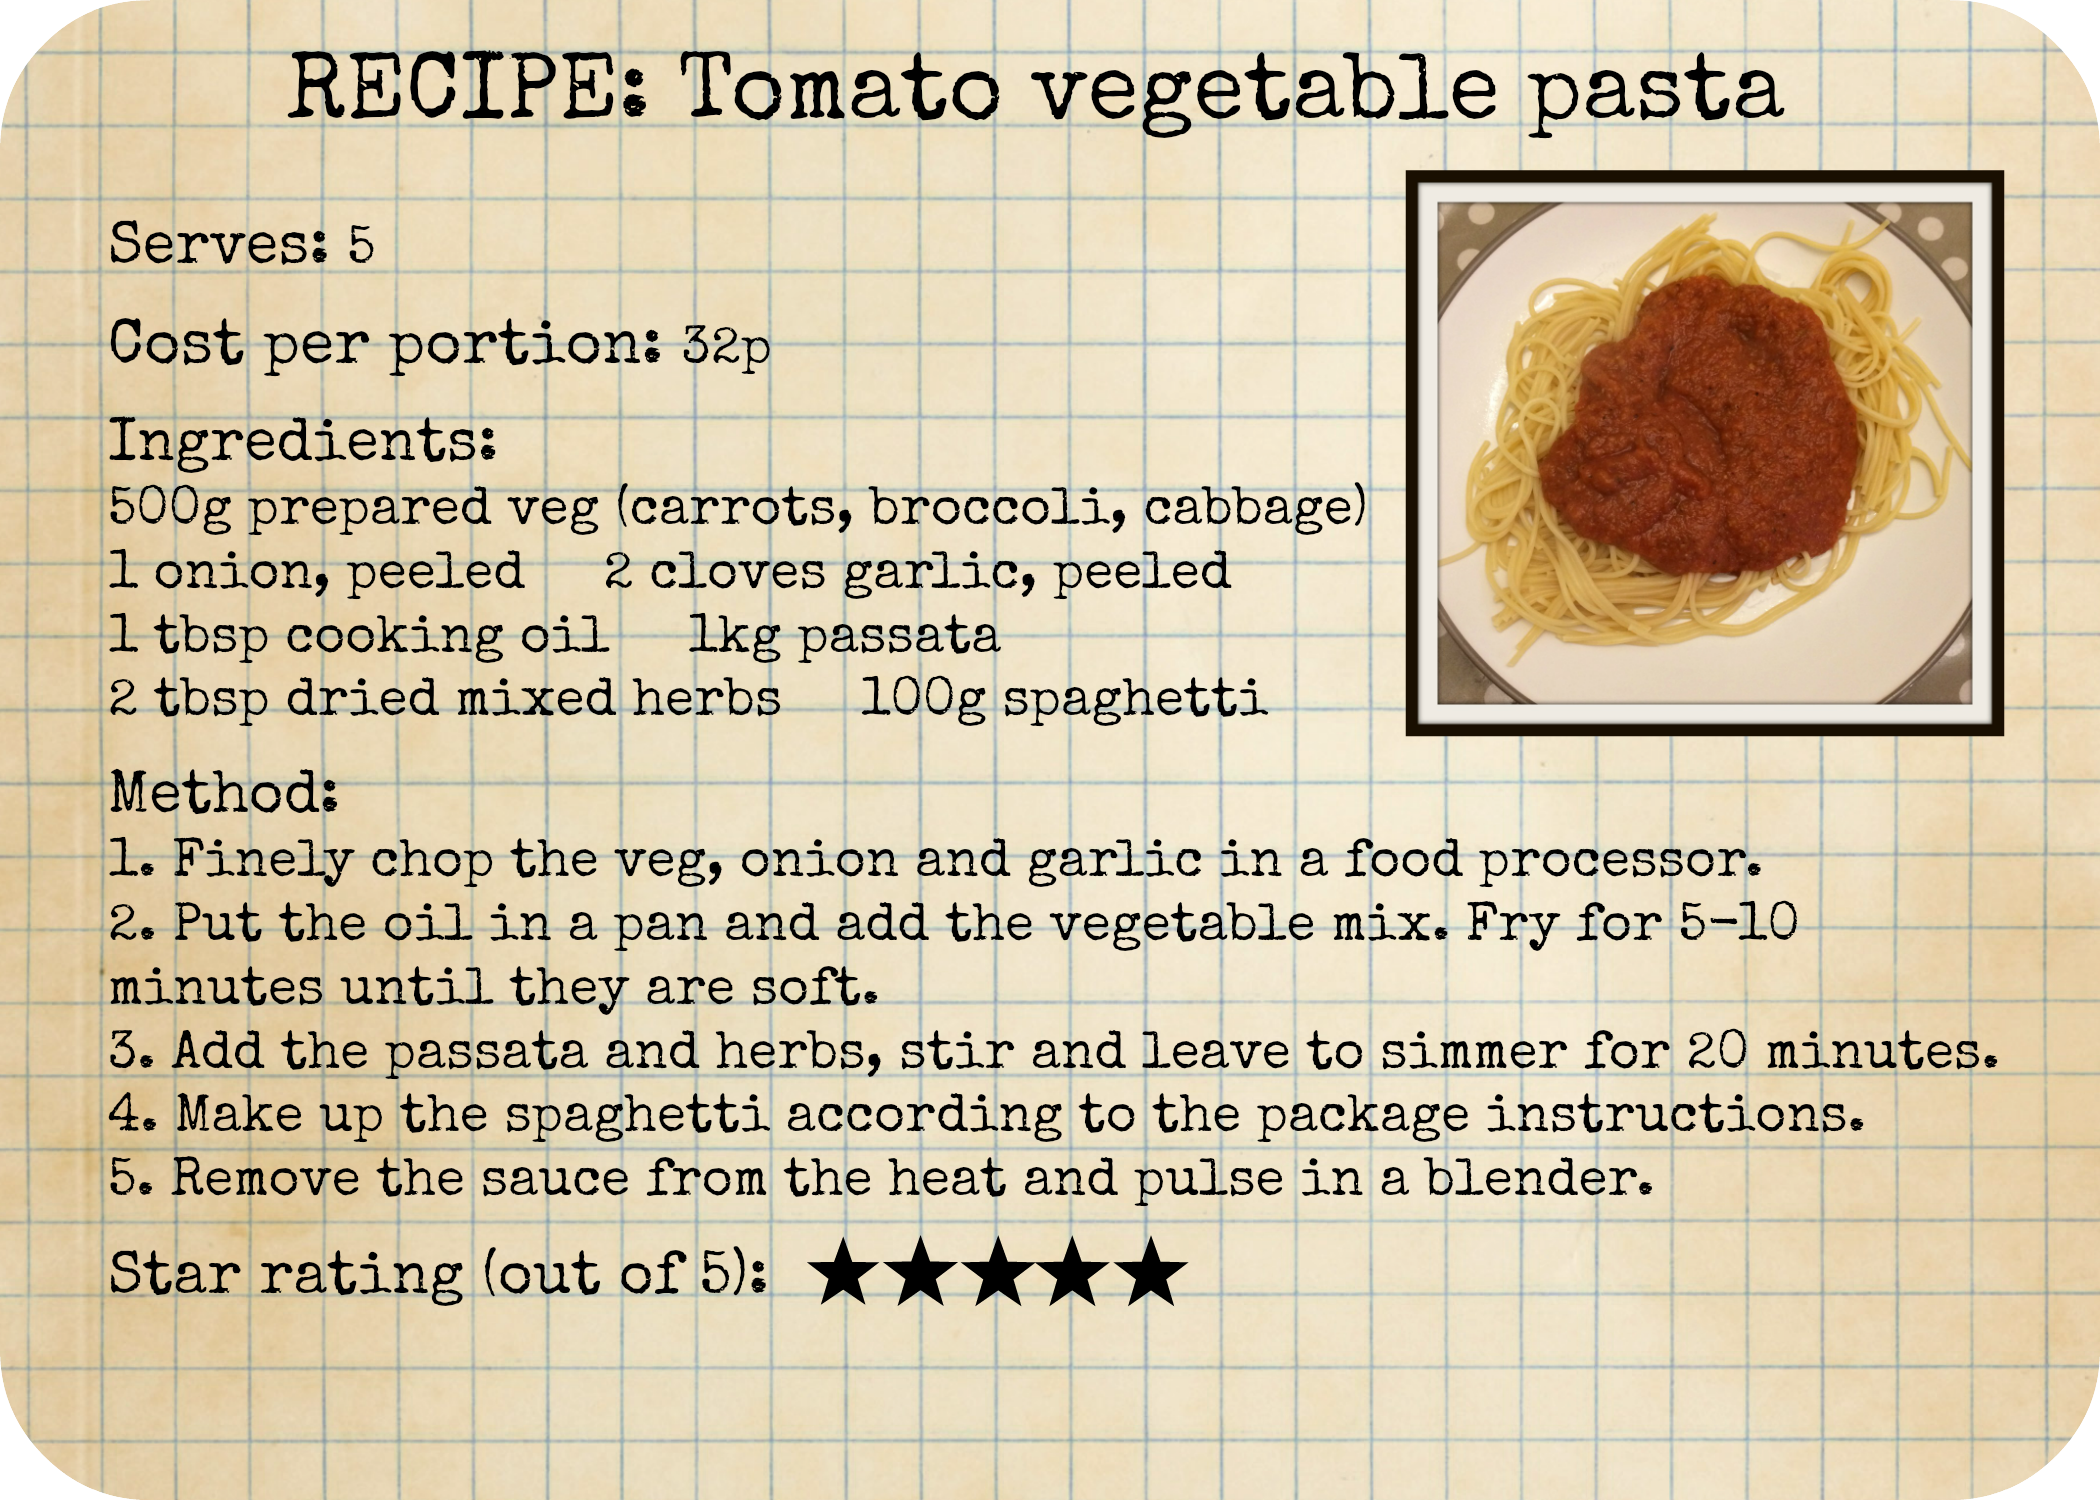 Live below the line tomato and vegetable pasta recipe | Healthy ...